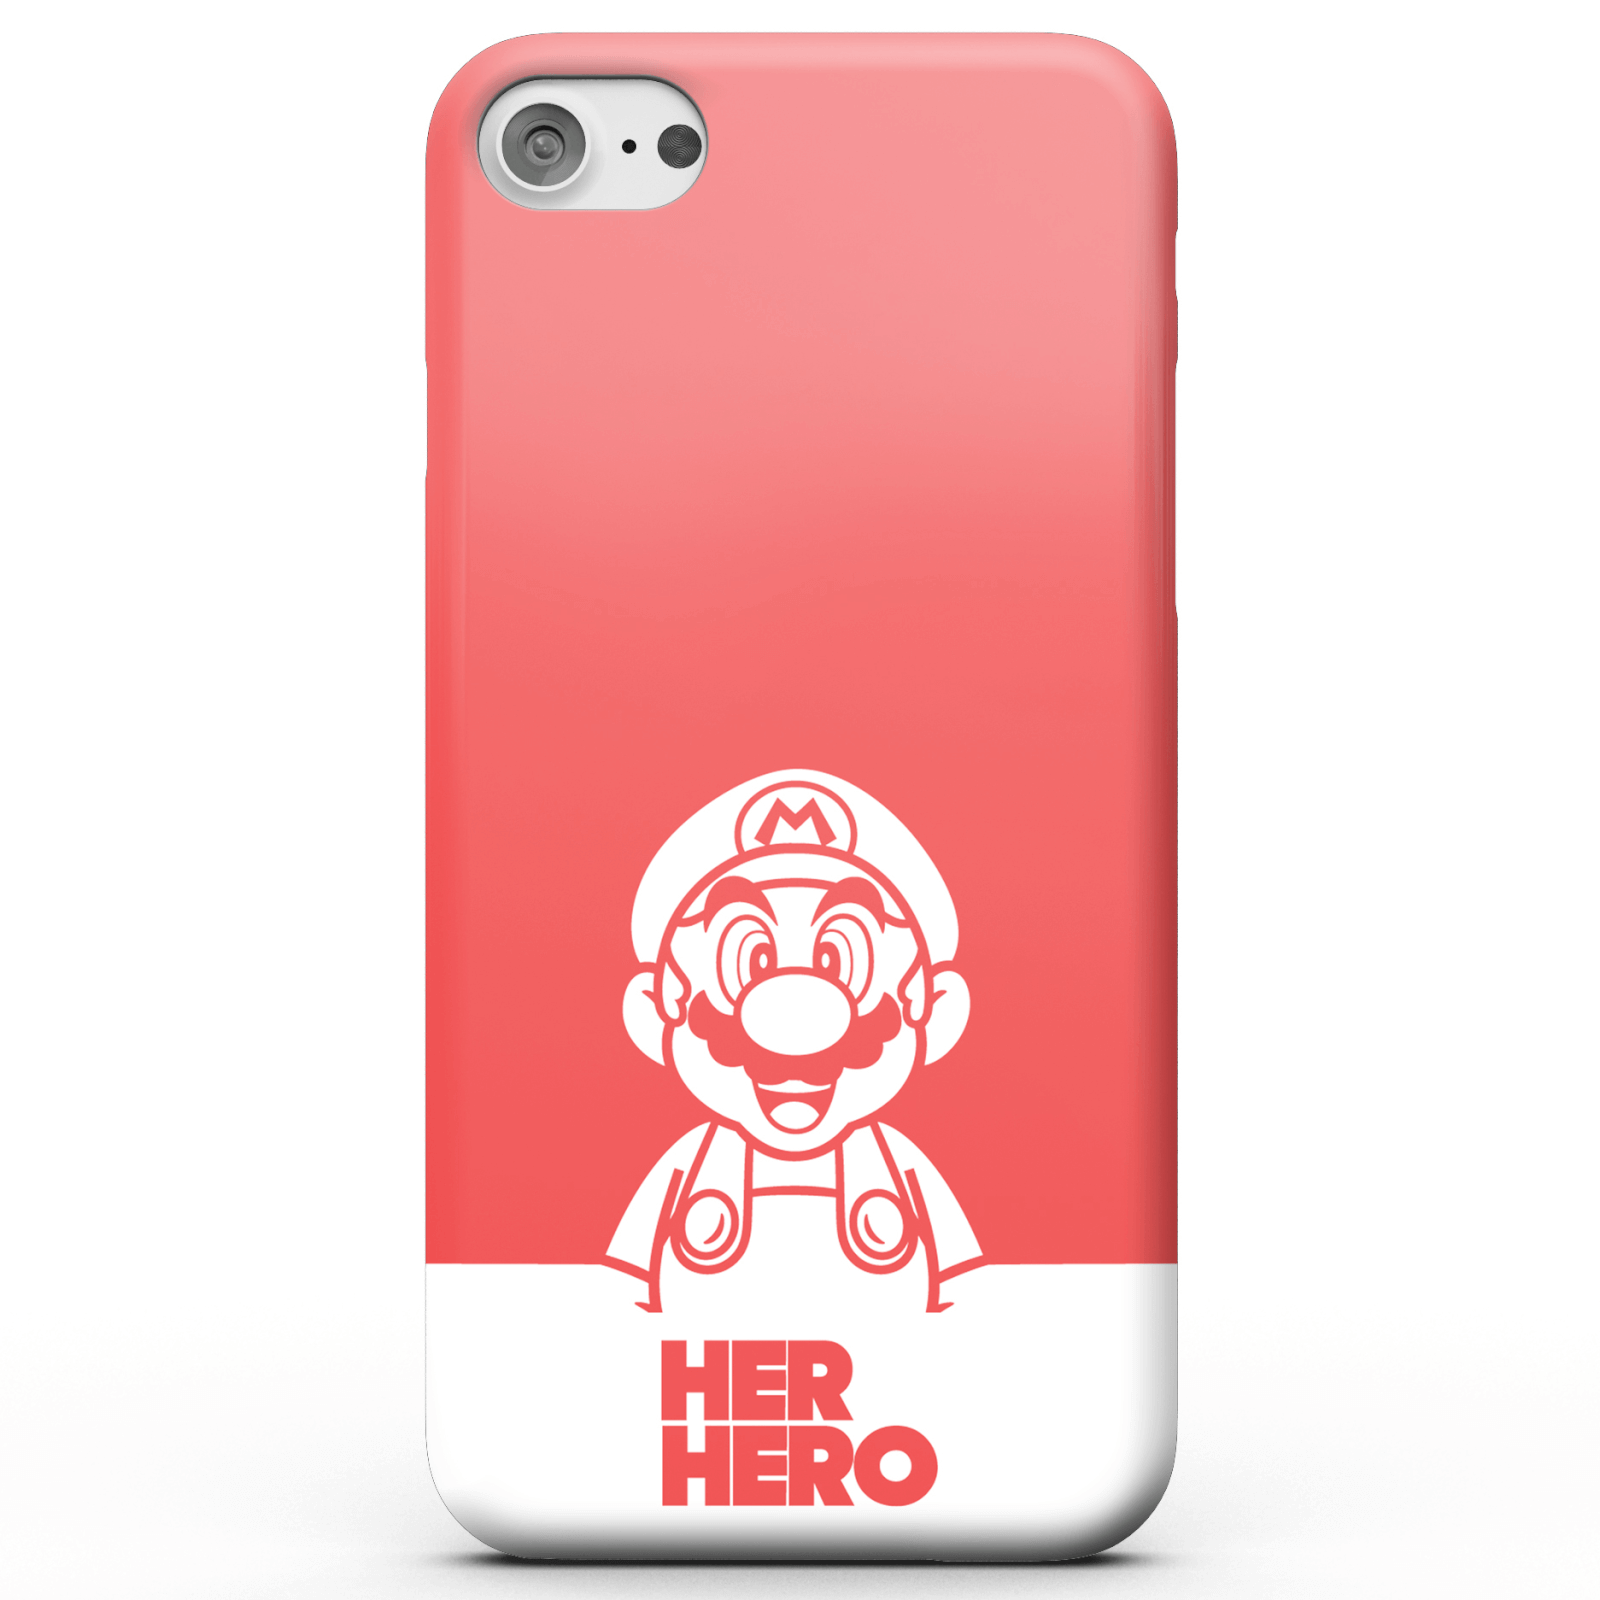 Super Mario Her Hero Phone Case for iPhone and Android - iPhone 6 Plus - Tough Case - Gloss